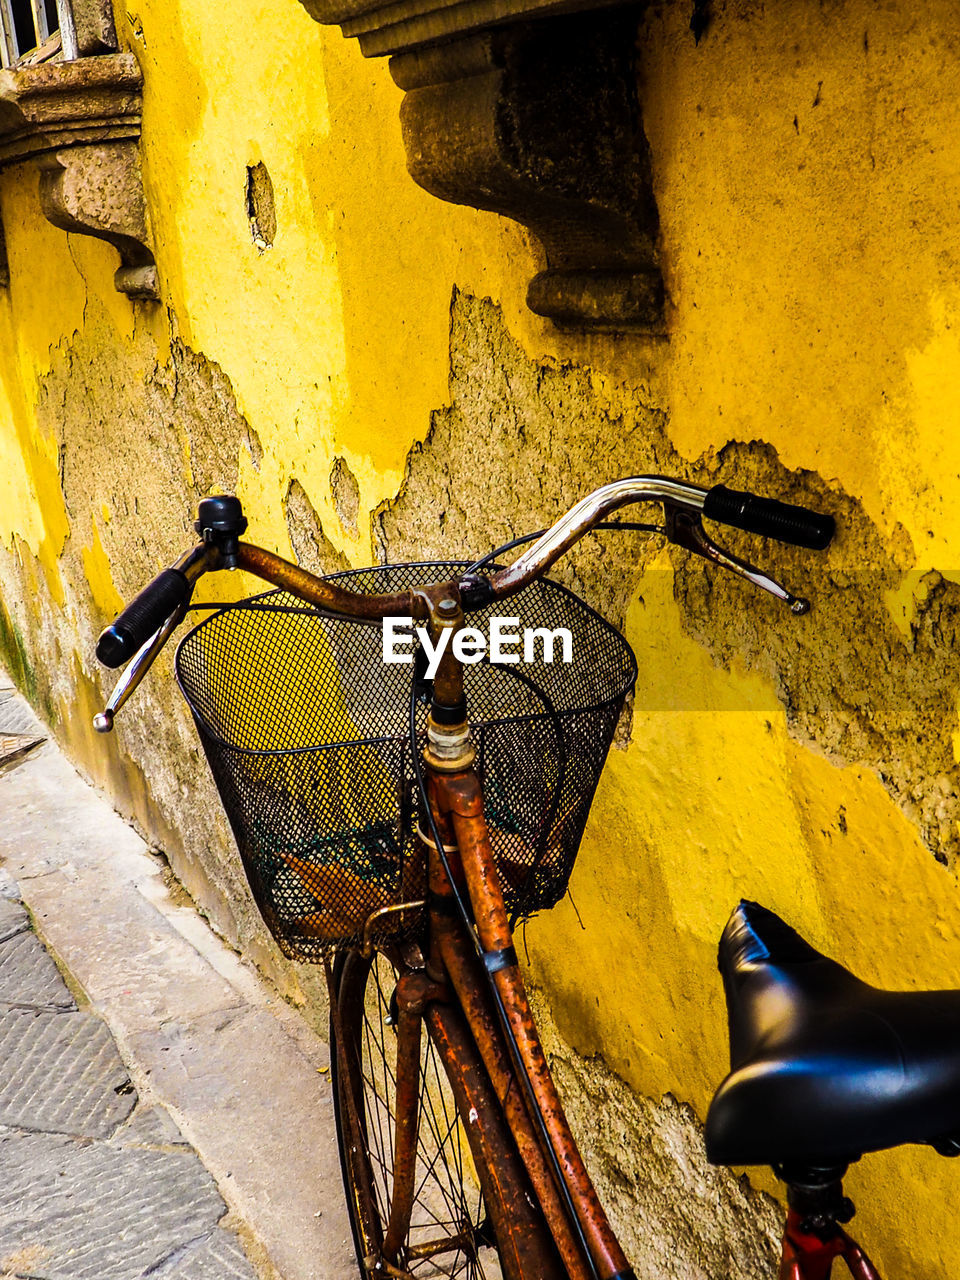 bicycle, land vehicle, yellow, wall - building feature, architecture, mode of transportation, transportation, built structure, stationary, wall, no people, building exterior, day, handlebar, basket, metal, parking, street, bicycle basket, outdoors